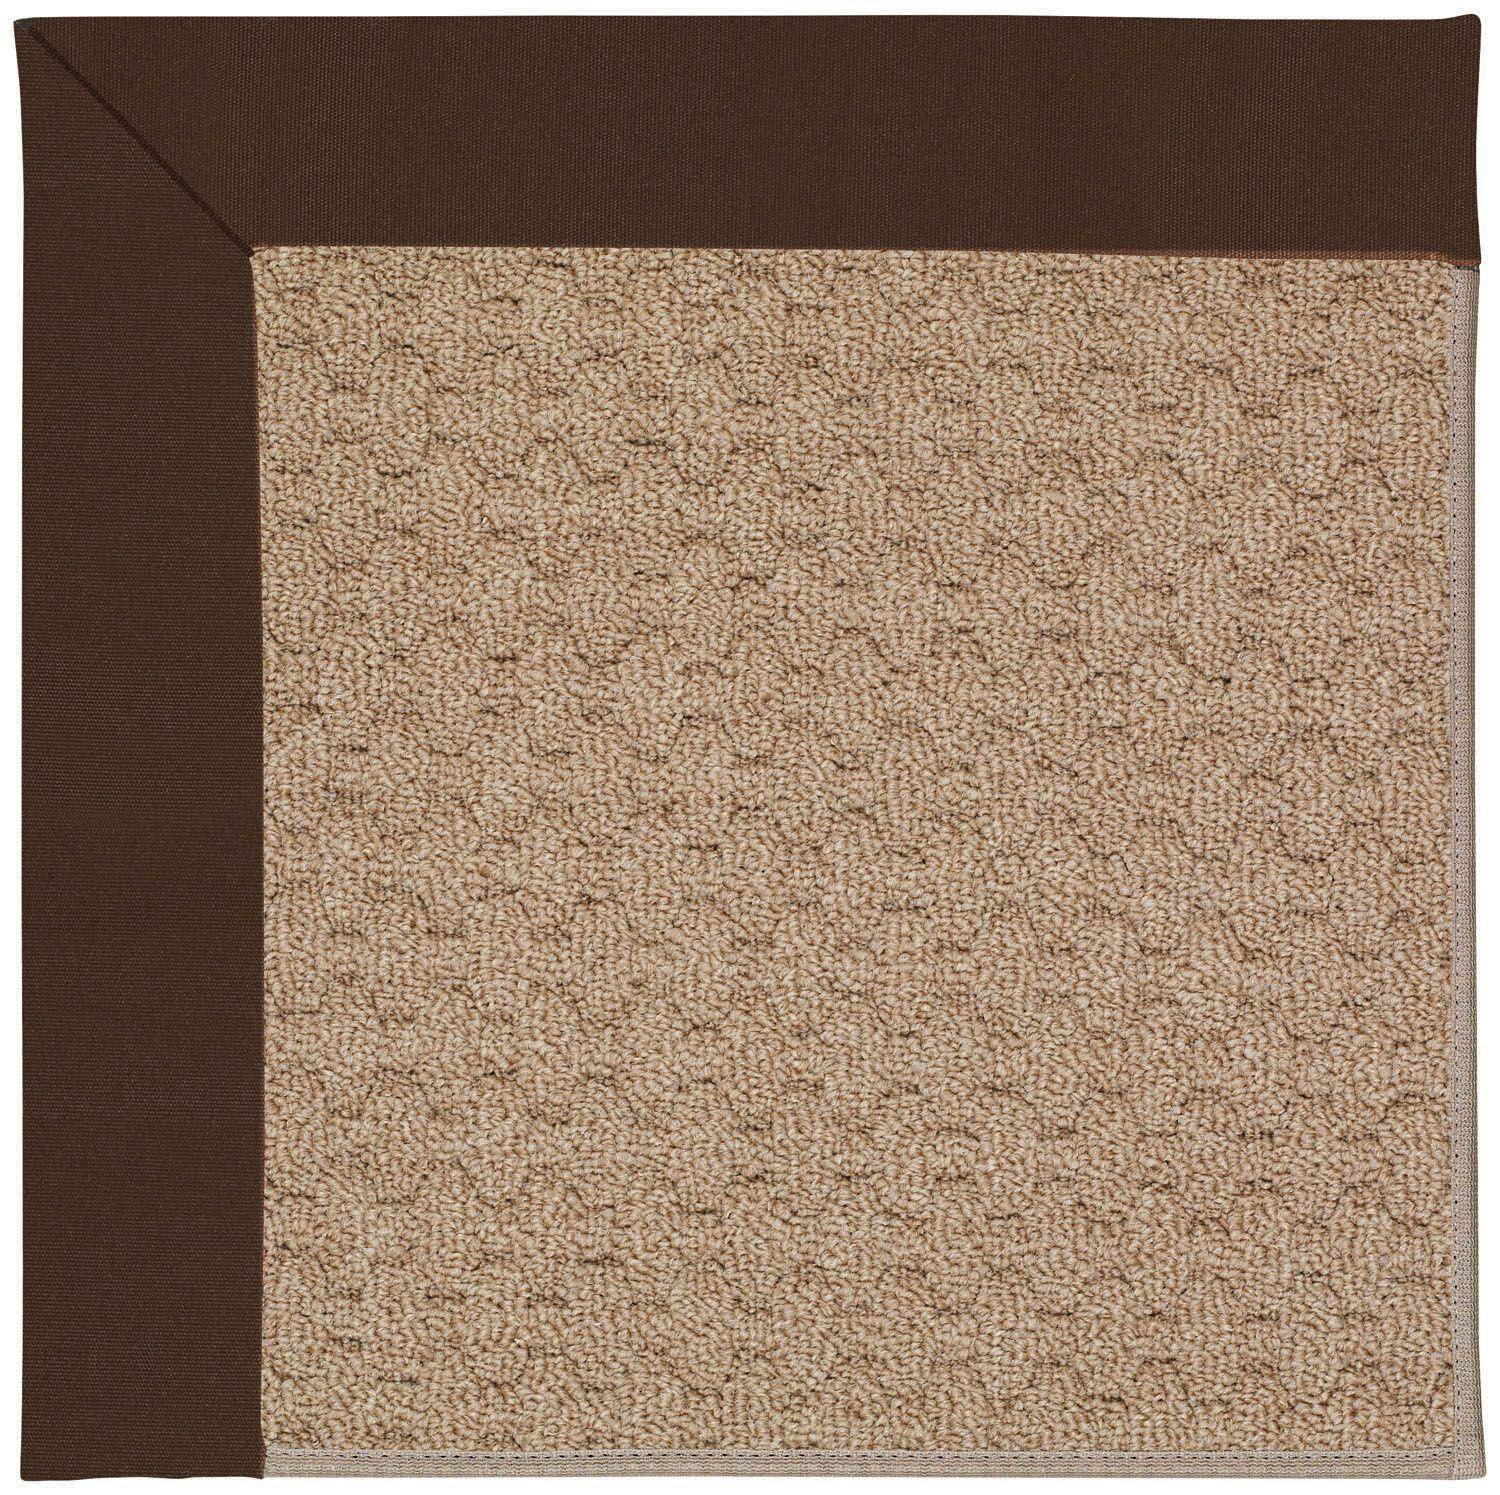 Lisle Machine Tufted Dark Chocolate/Brown Indoor/Outdoor Area Rug Rug Size: Rectangle 5' x 8'